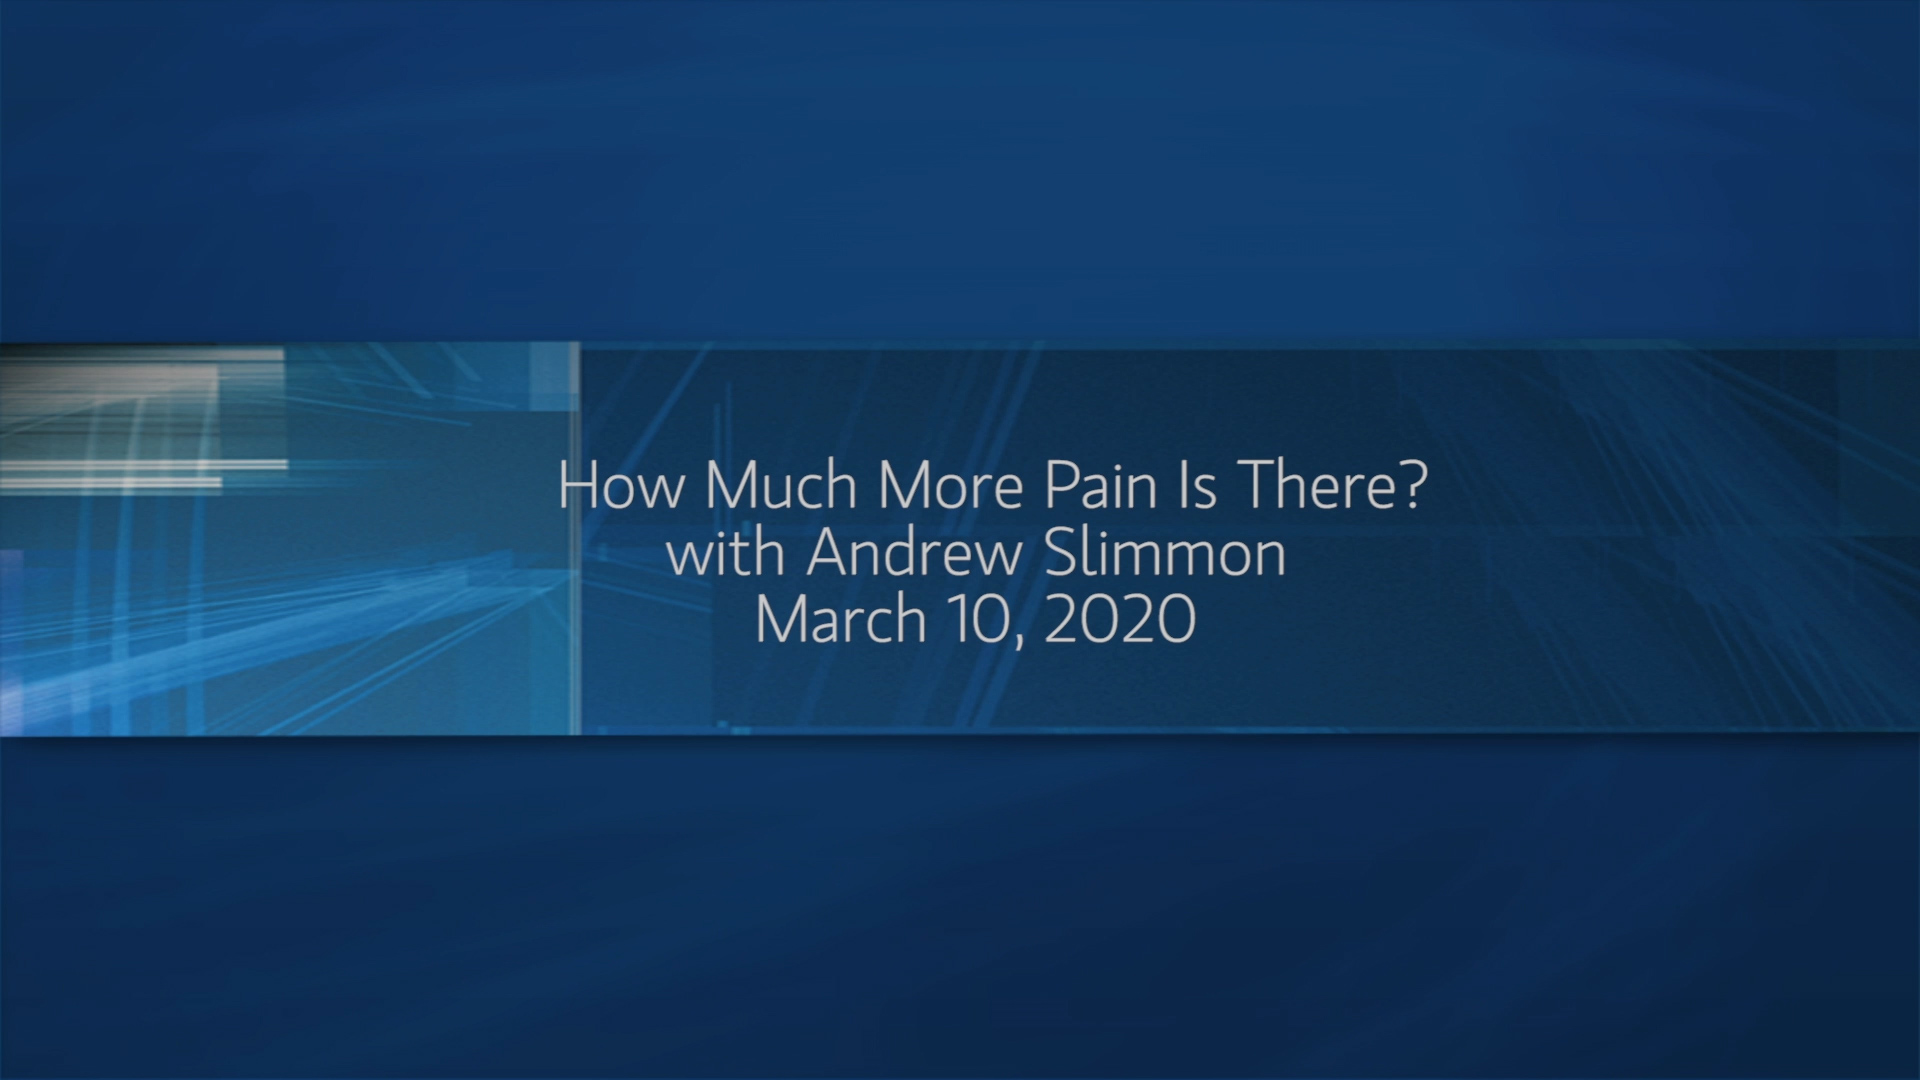 How Much More Pain Is There?